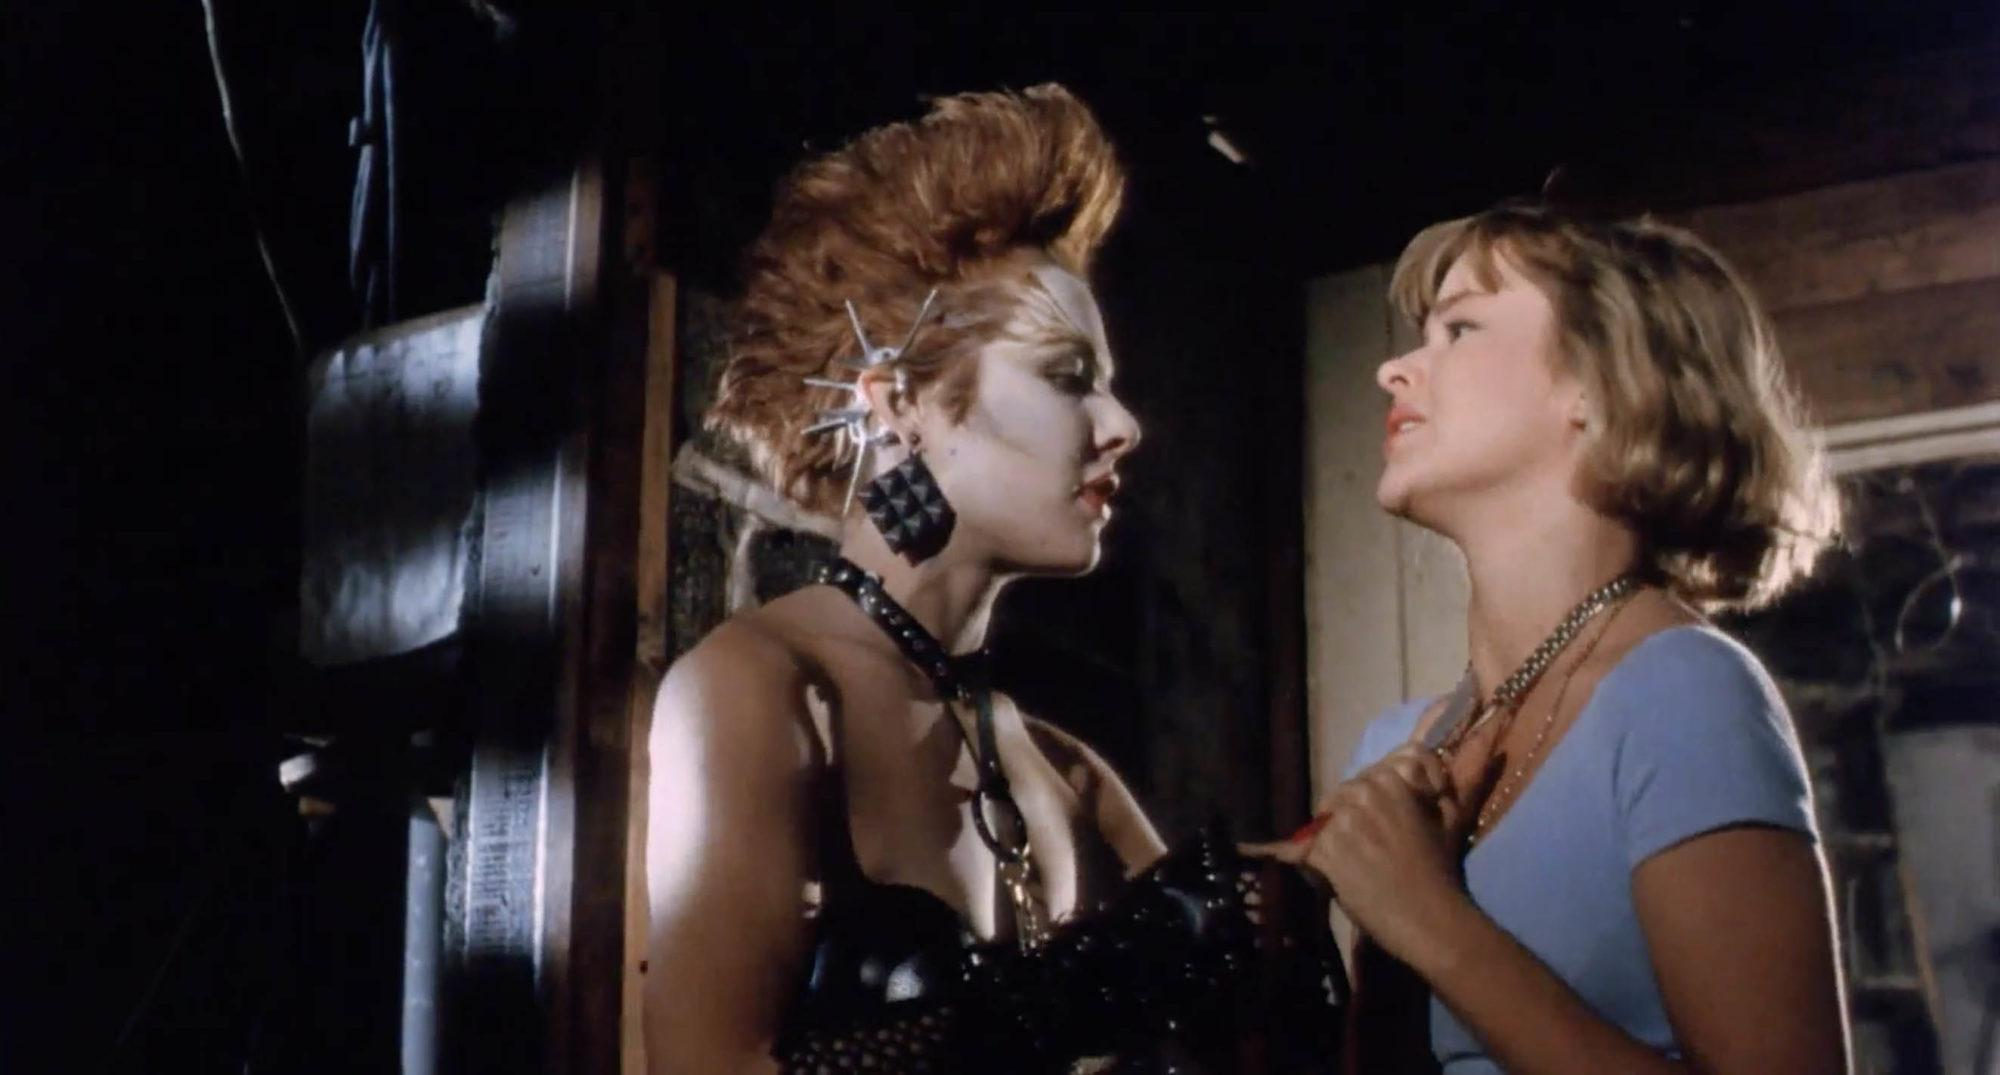 Janelle Brady and Lauren Heather McMahon in Class Of Nuke 'Em High (1986)